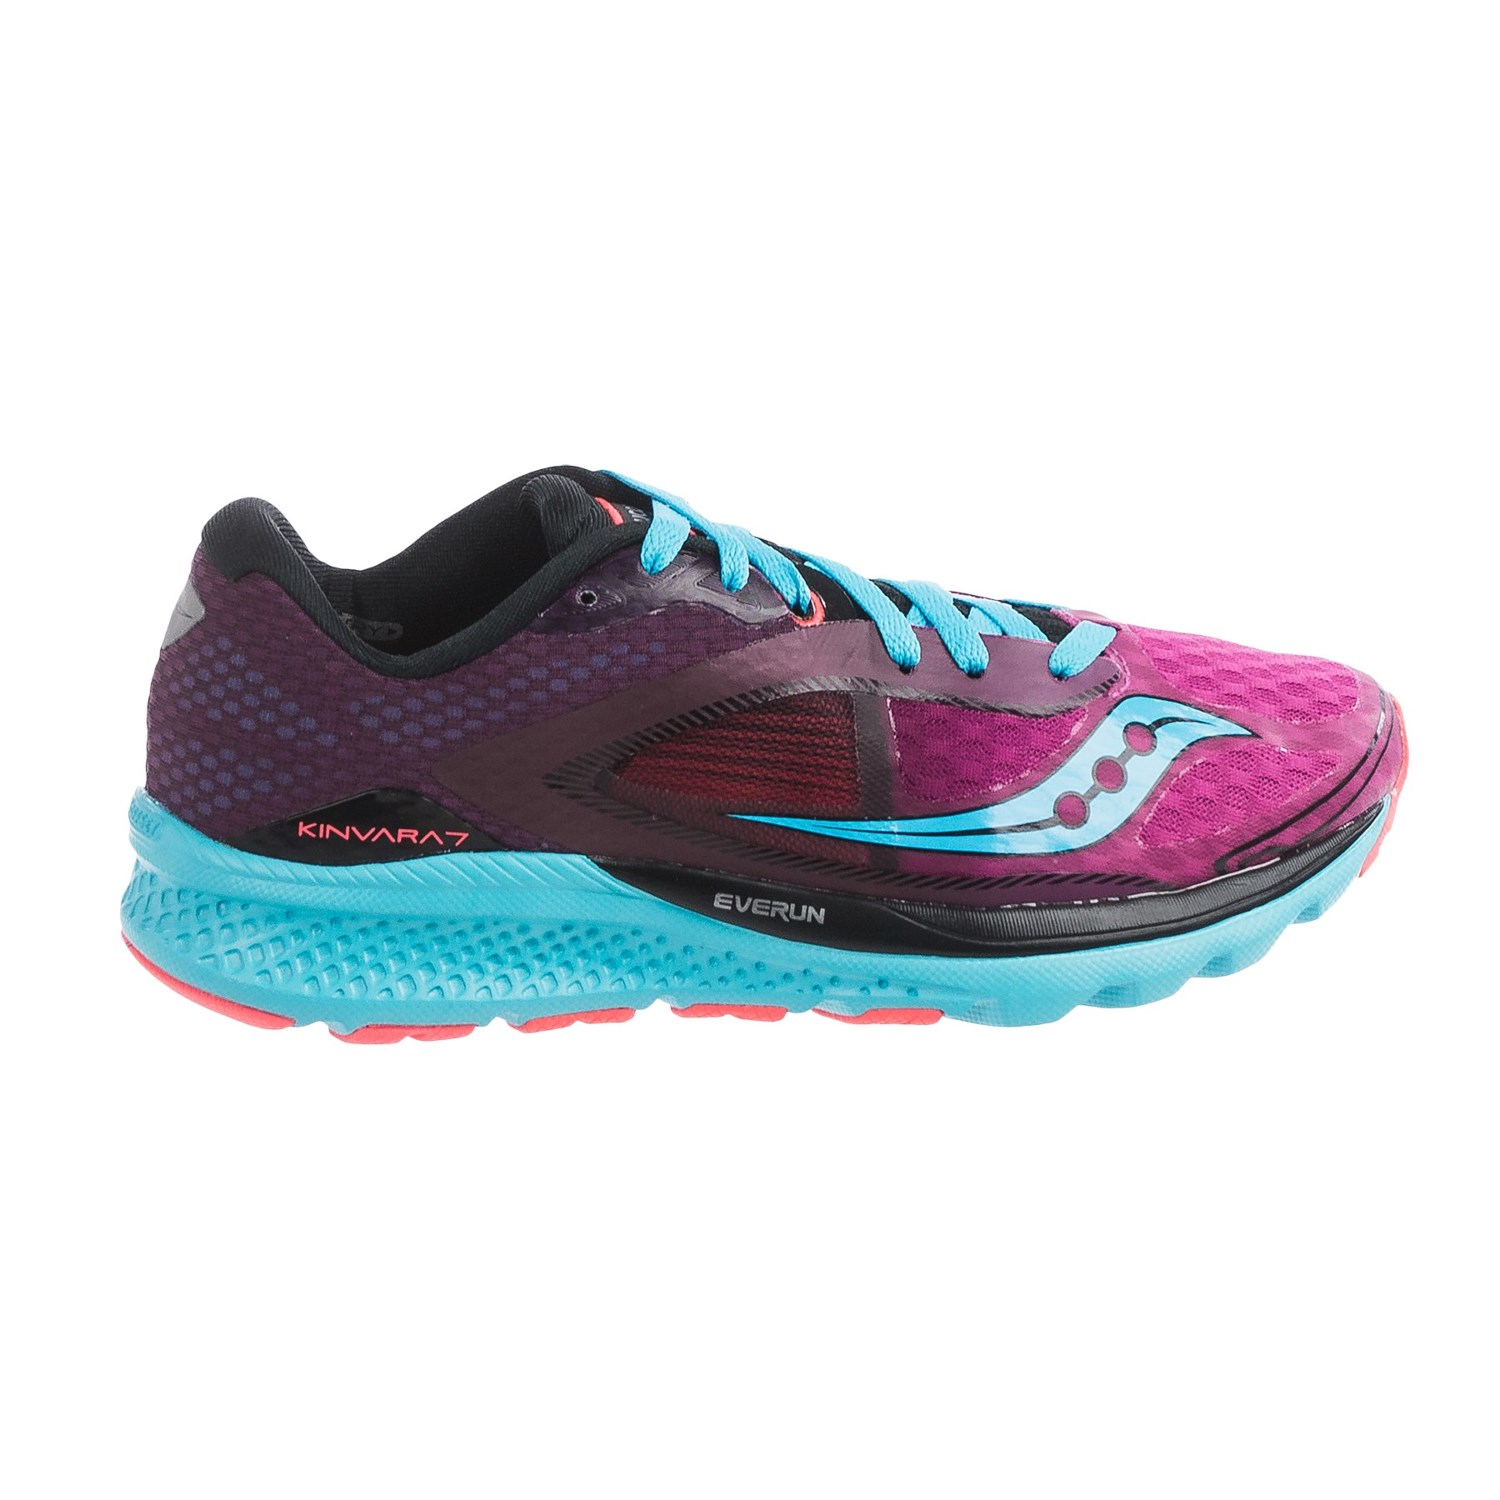 Saucony Track Shoes Review